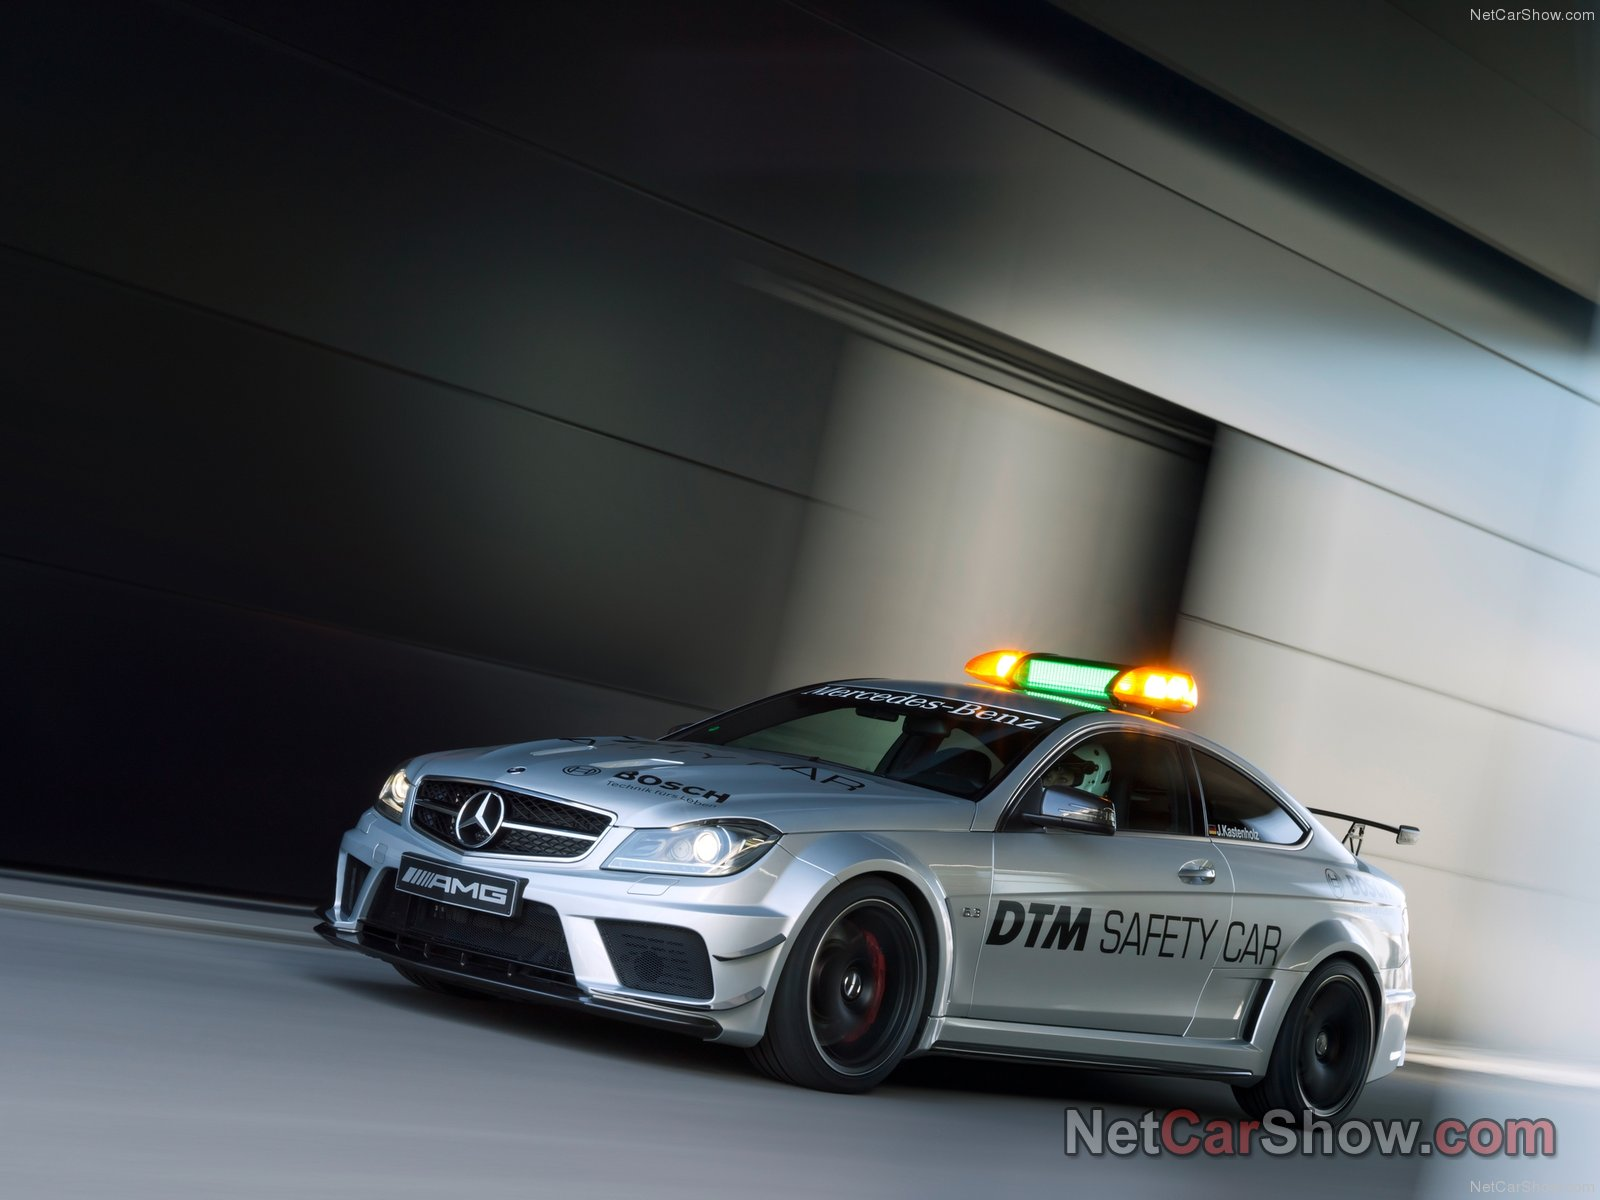 Mercedes-Benz C63 AMG DTM Safety Car photos - PhotoGallery with 14 ...